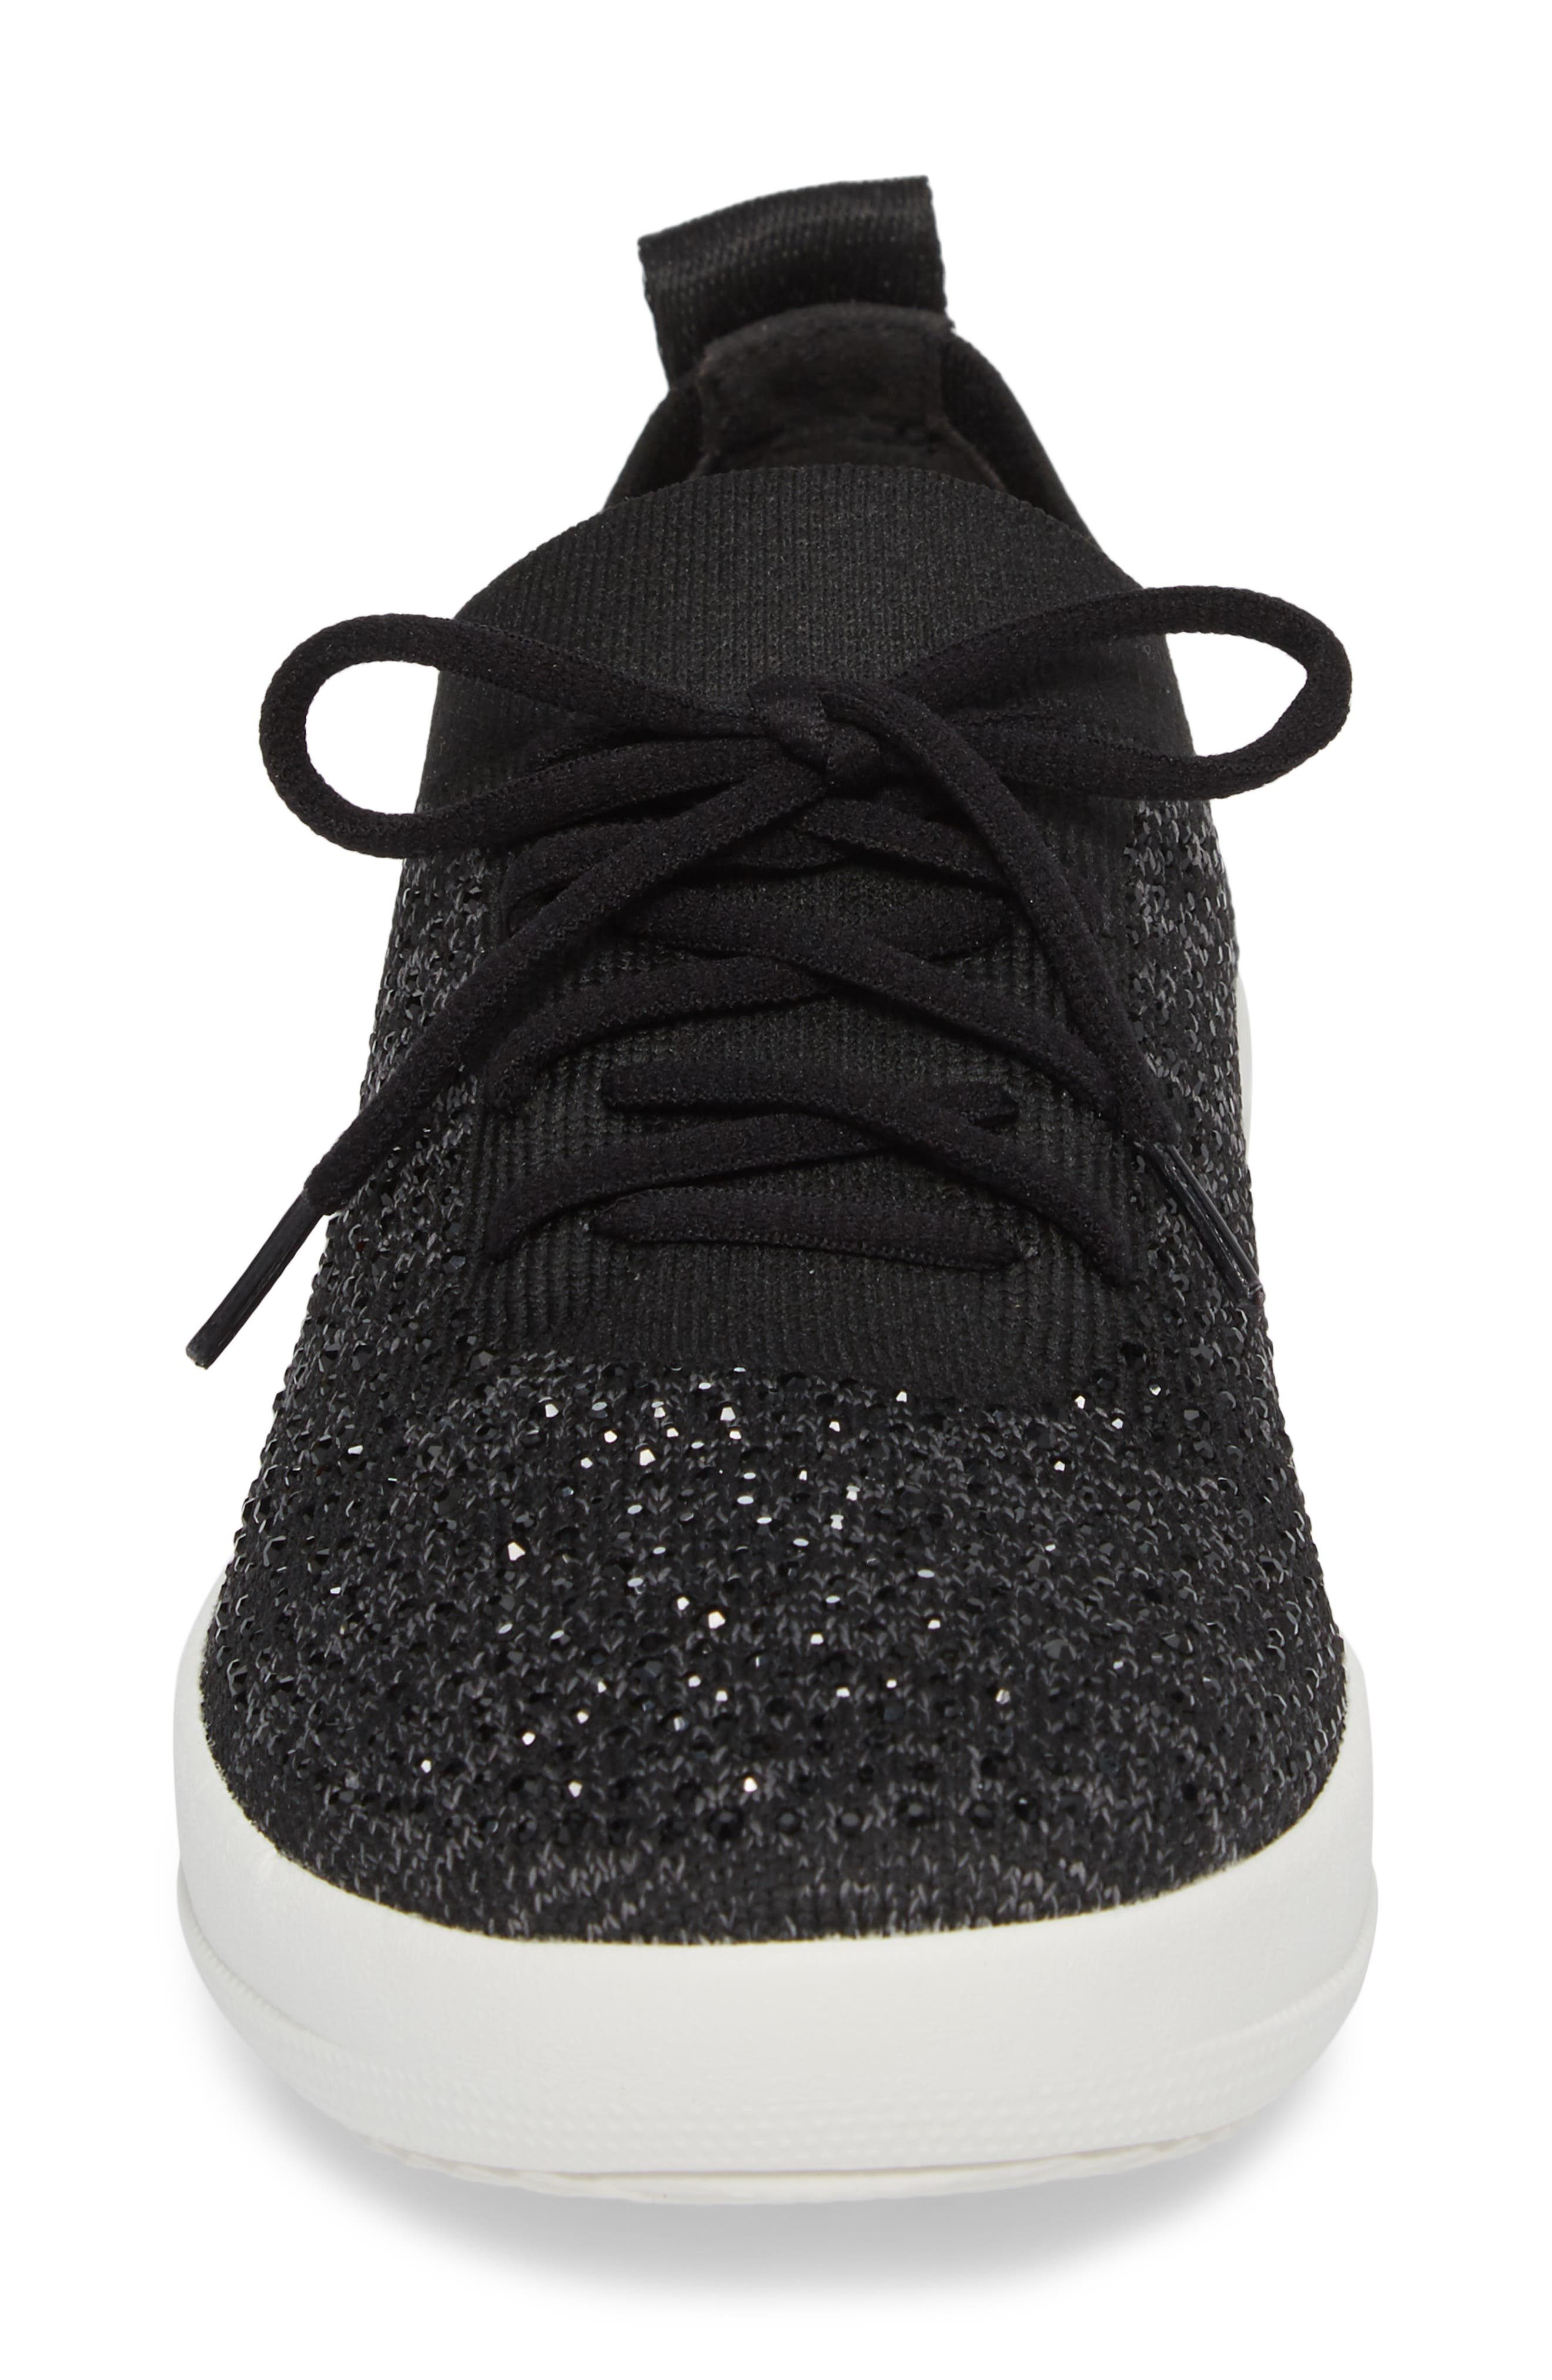 FITFLOP, Uberknit<sup>™</sup> F-Sporty Sneaker, Alternate thumbnail 4, color, 001